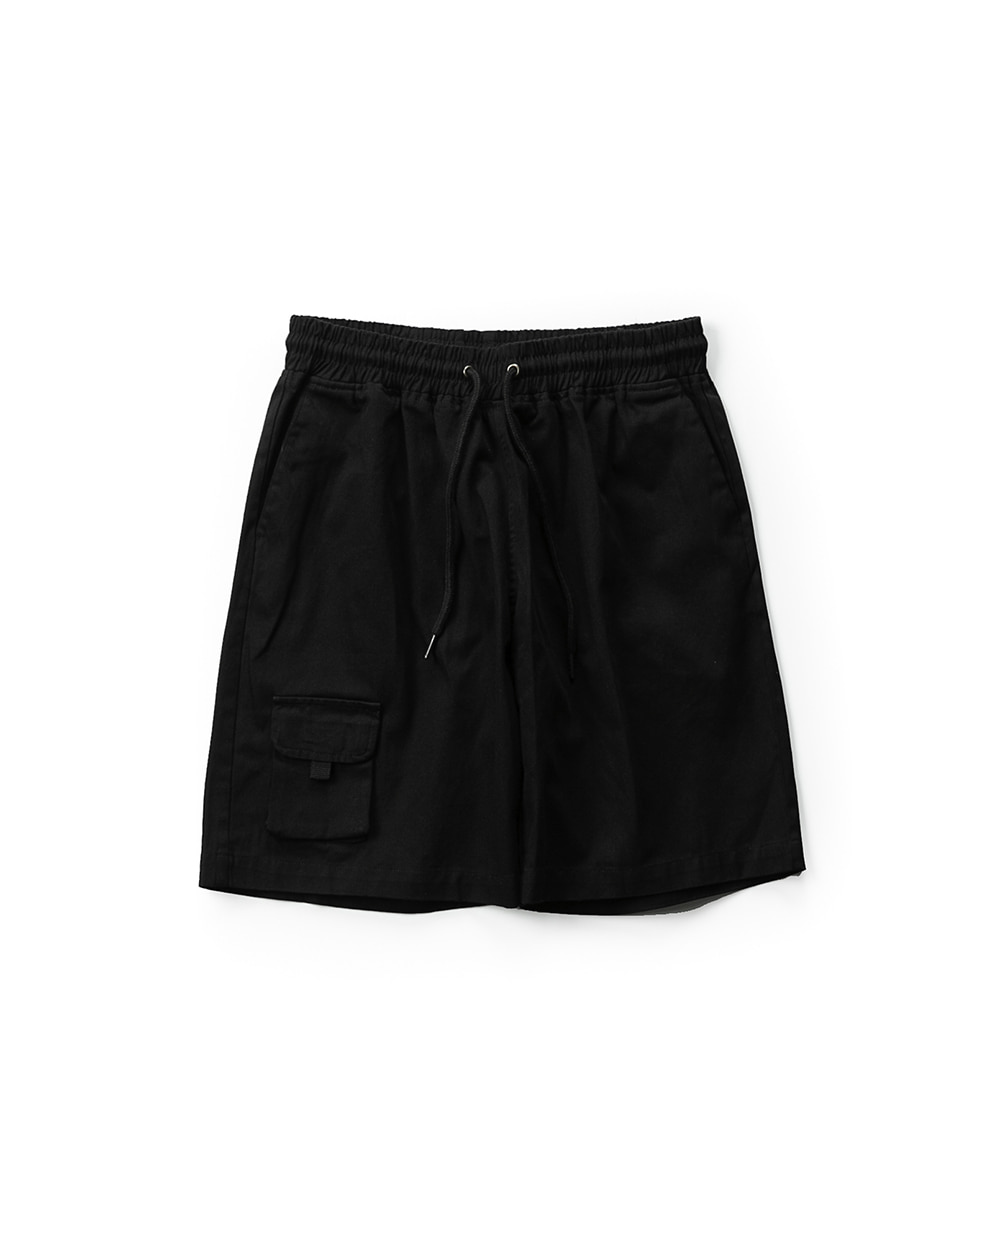 ANOTHER POCKET HALF PANTS BLACK